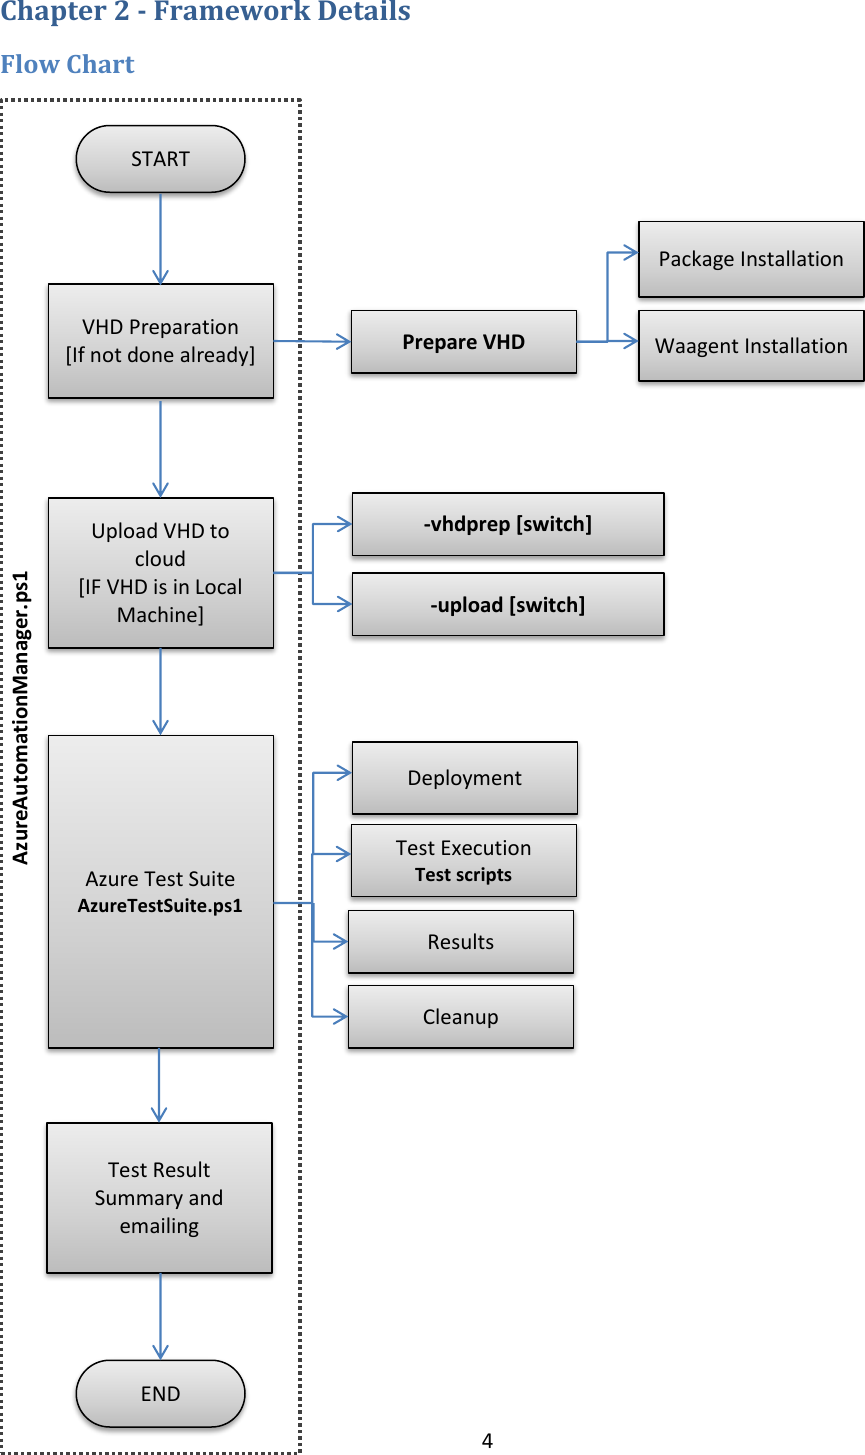 Azure Automation User Guide